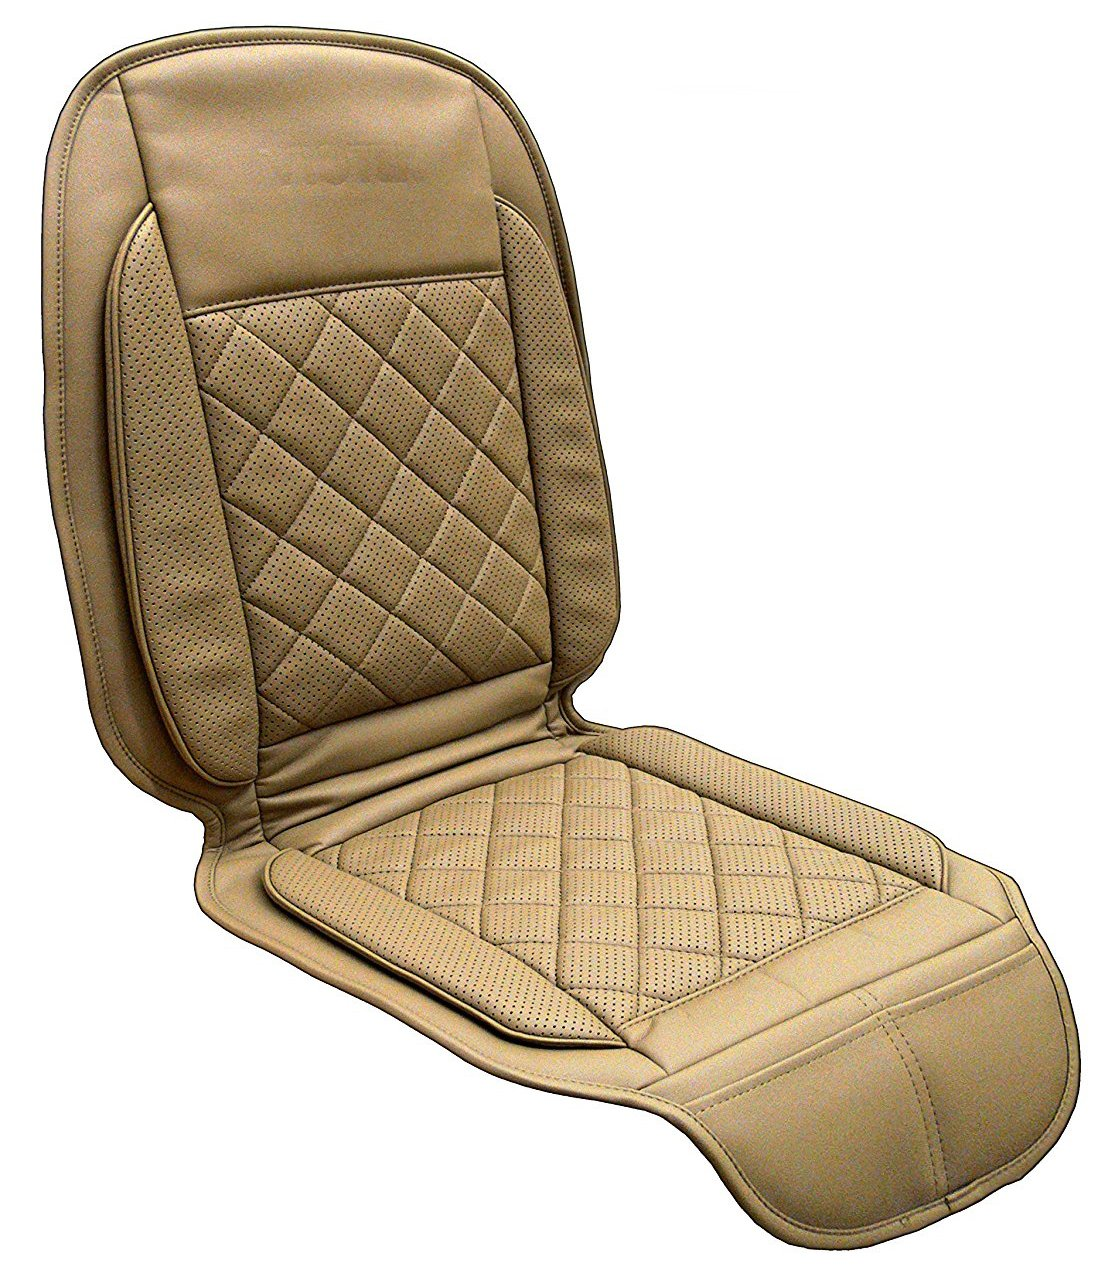 Viotek Temperature Controlled V2 Heating & Cooling Car Seat Cover – with 10 Temperature Zones and Wireless Remote 2000P2